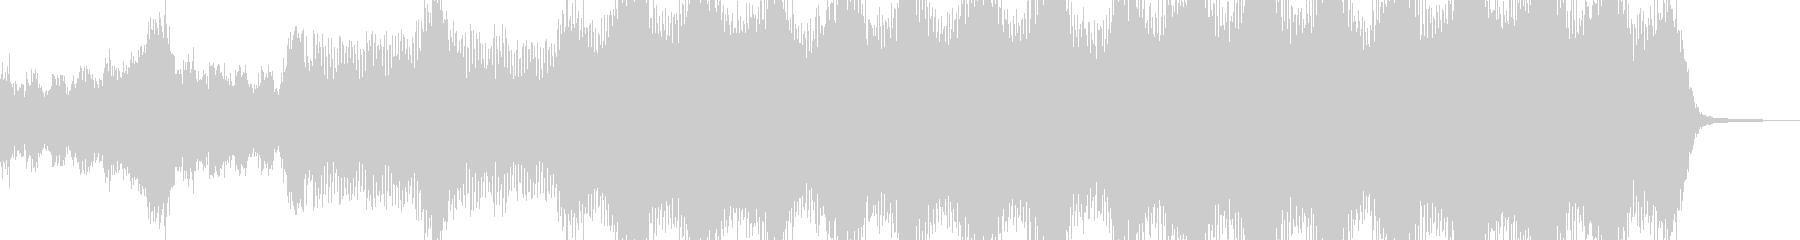 Produce undeath and bloody horror A2's unreproduced waveform